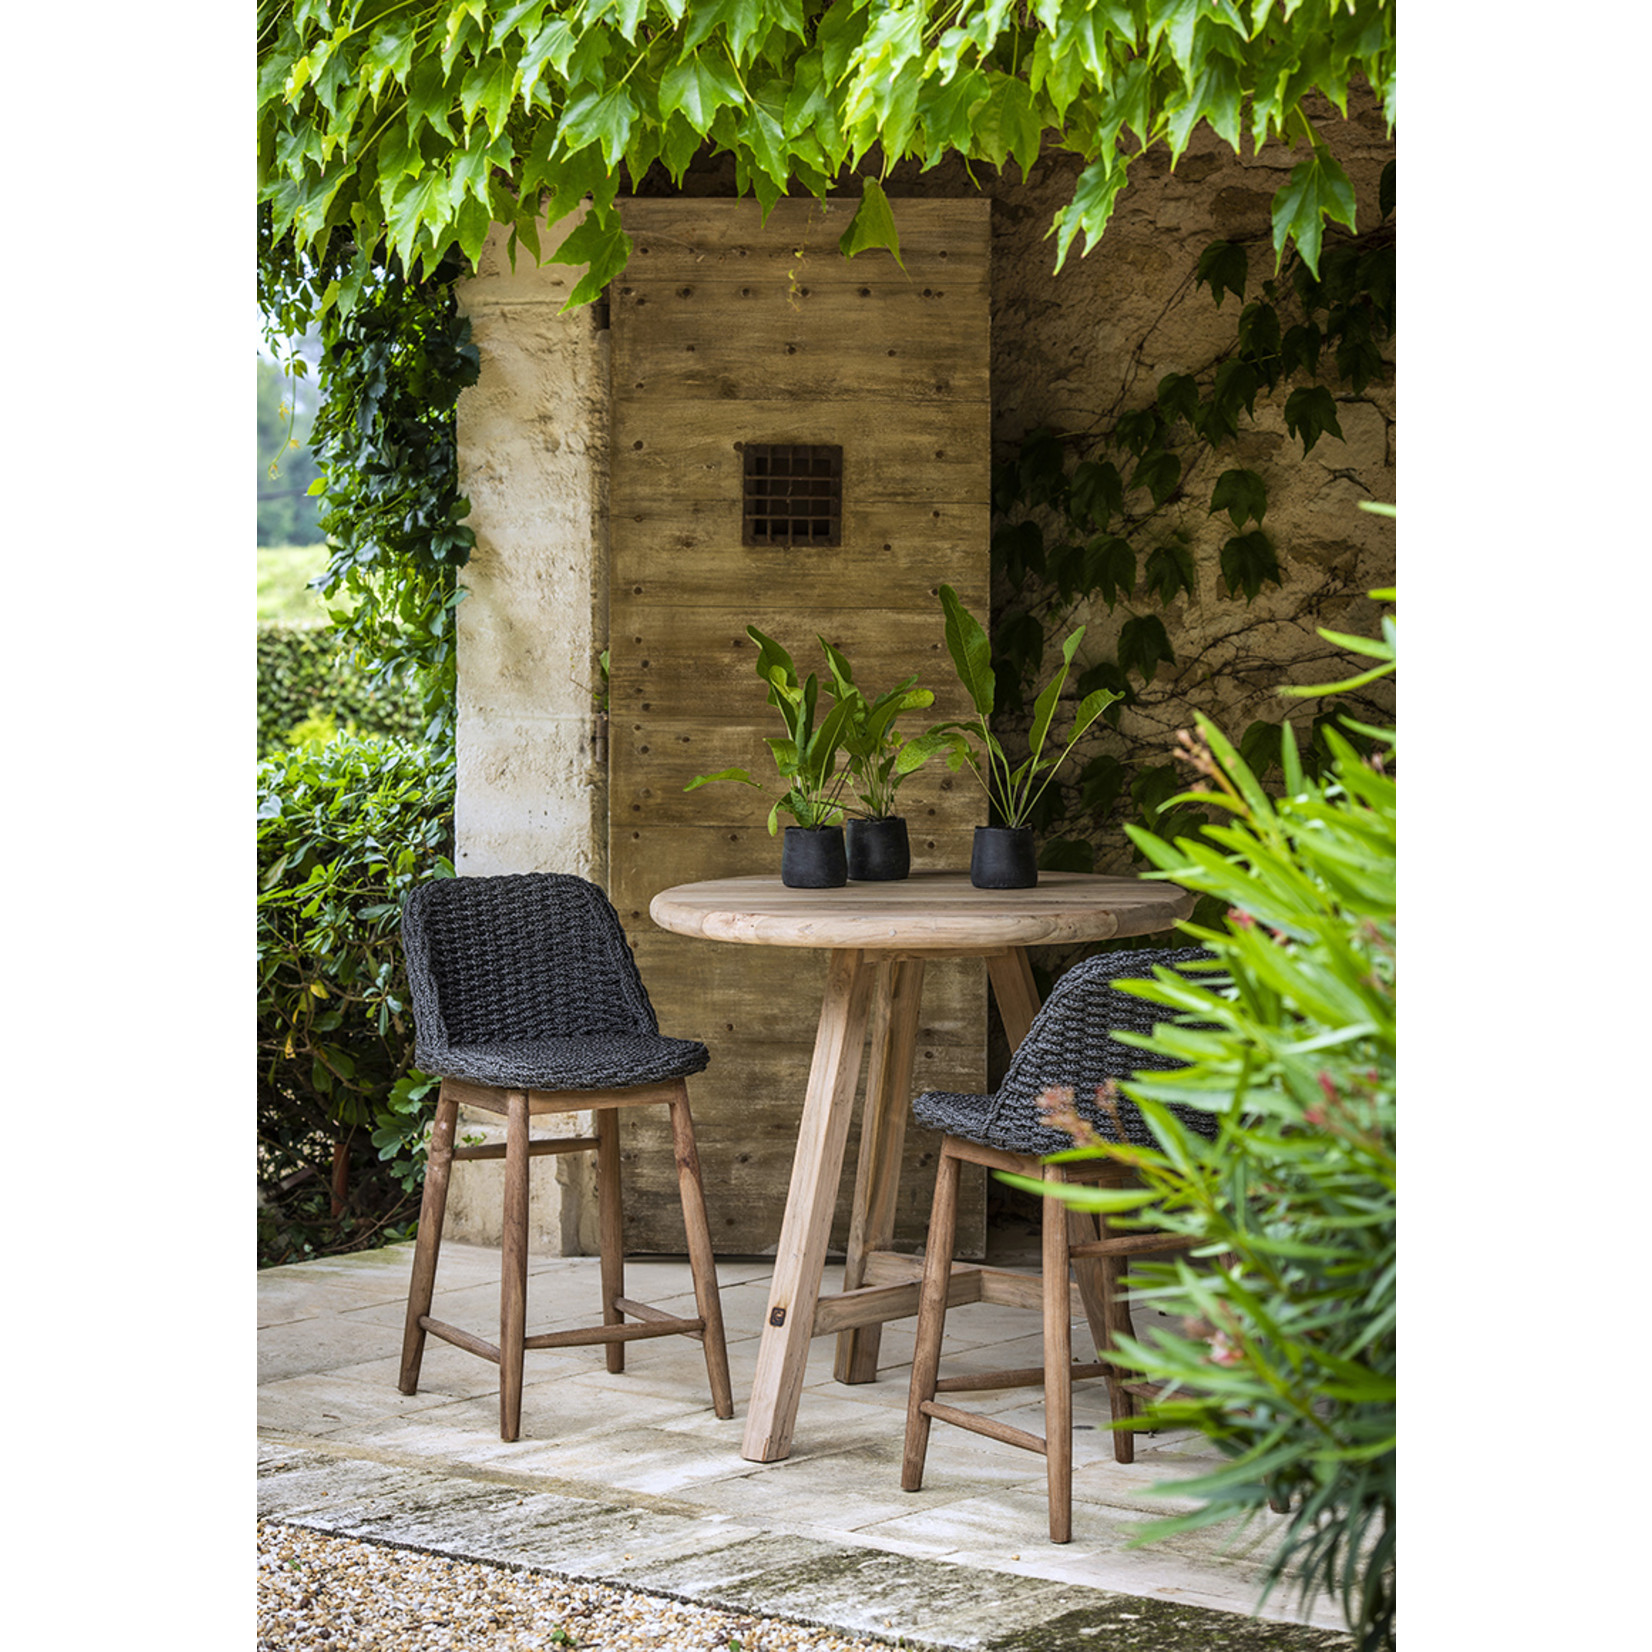 Gommaire Bar Chair Sienna | Reclaimed Teak Natural Gray / PE Wicker Charcoal